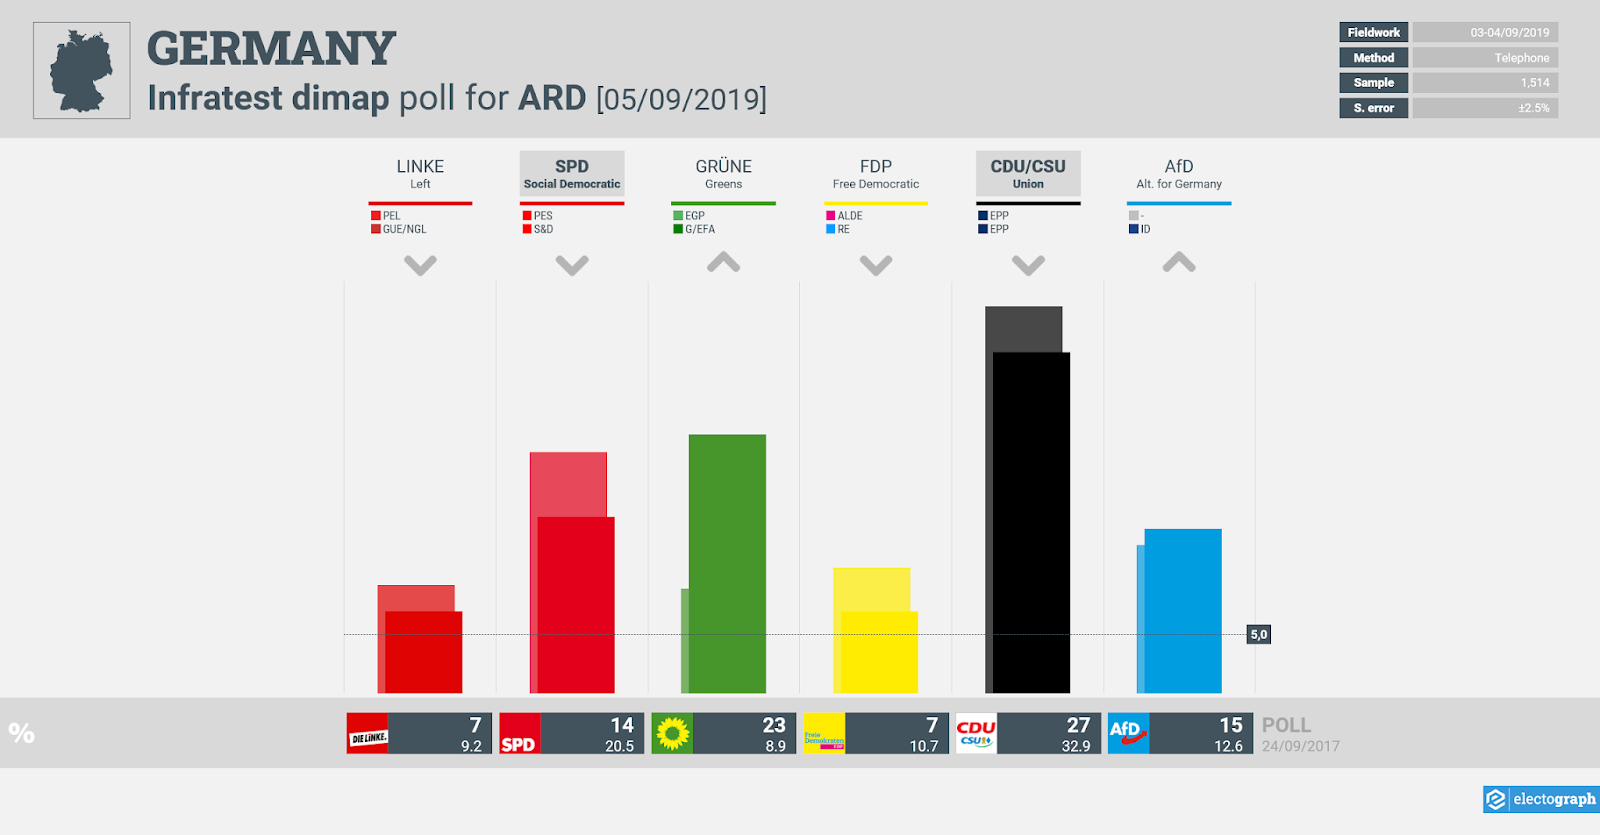 GERMANY: Infratest dimap poll chart for ARD, 5 September 2019